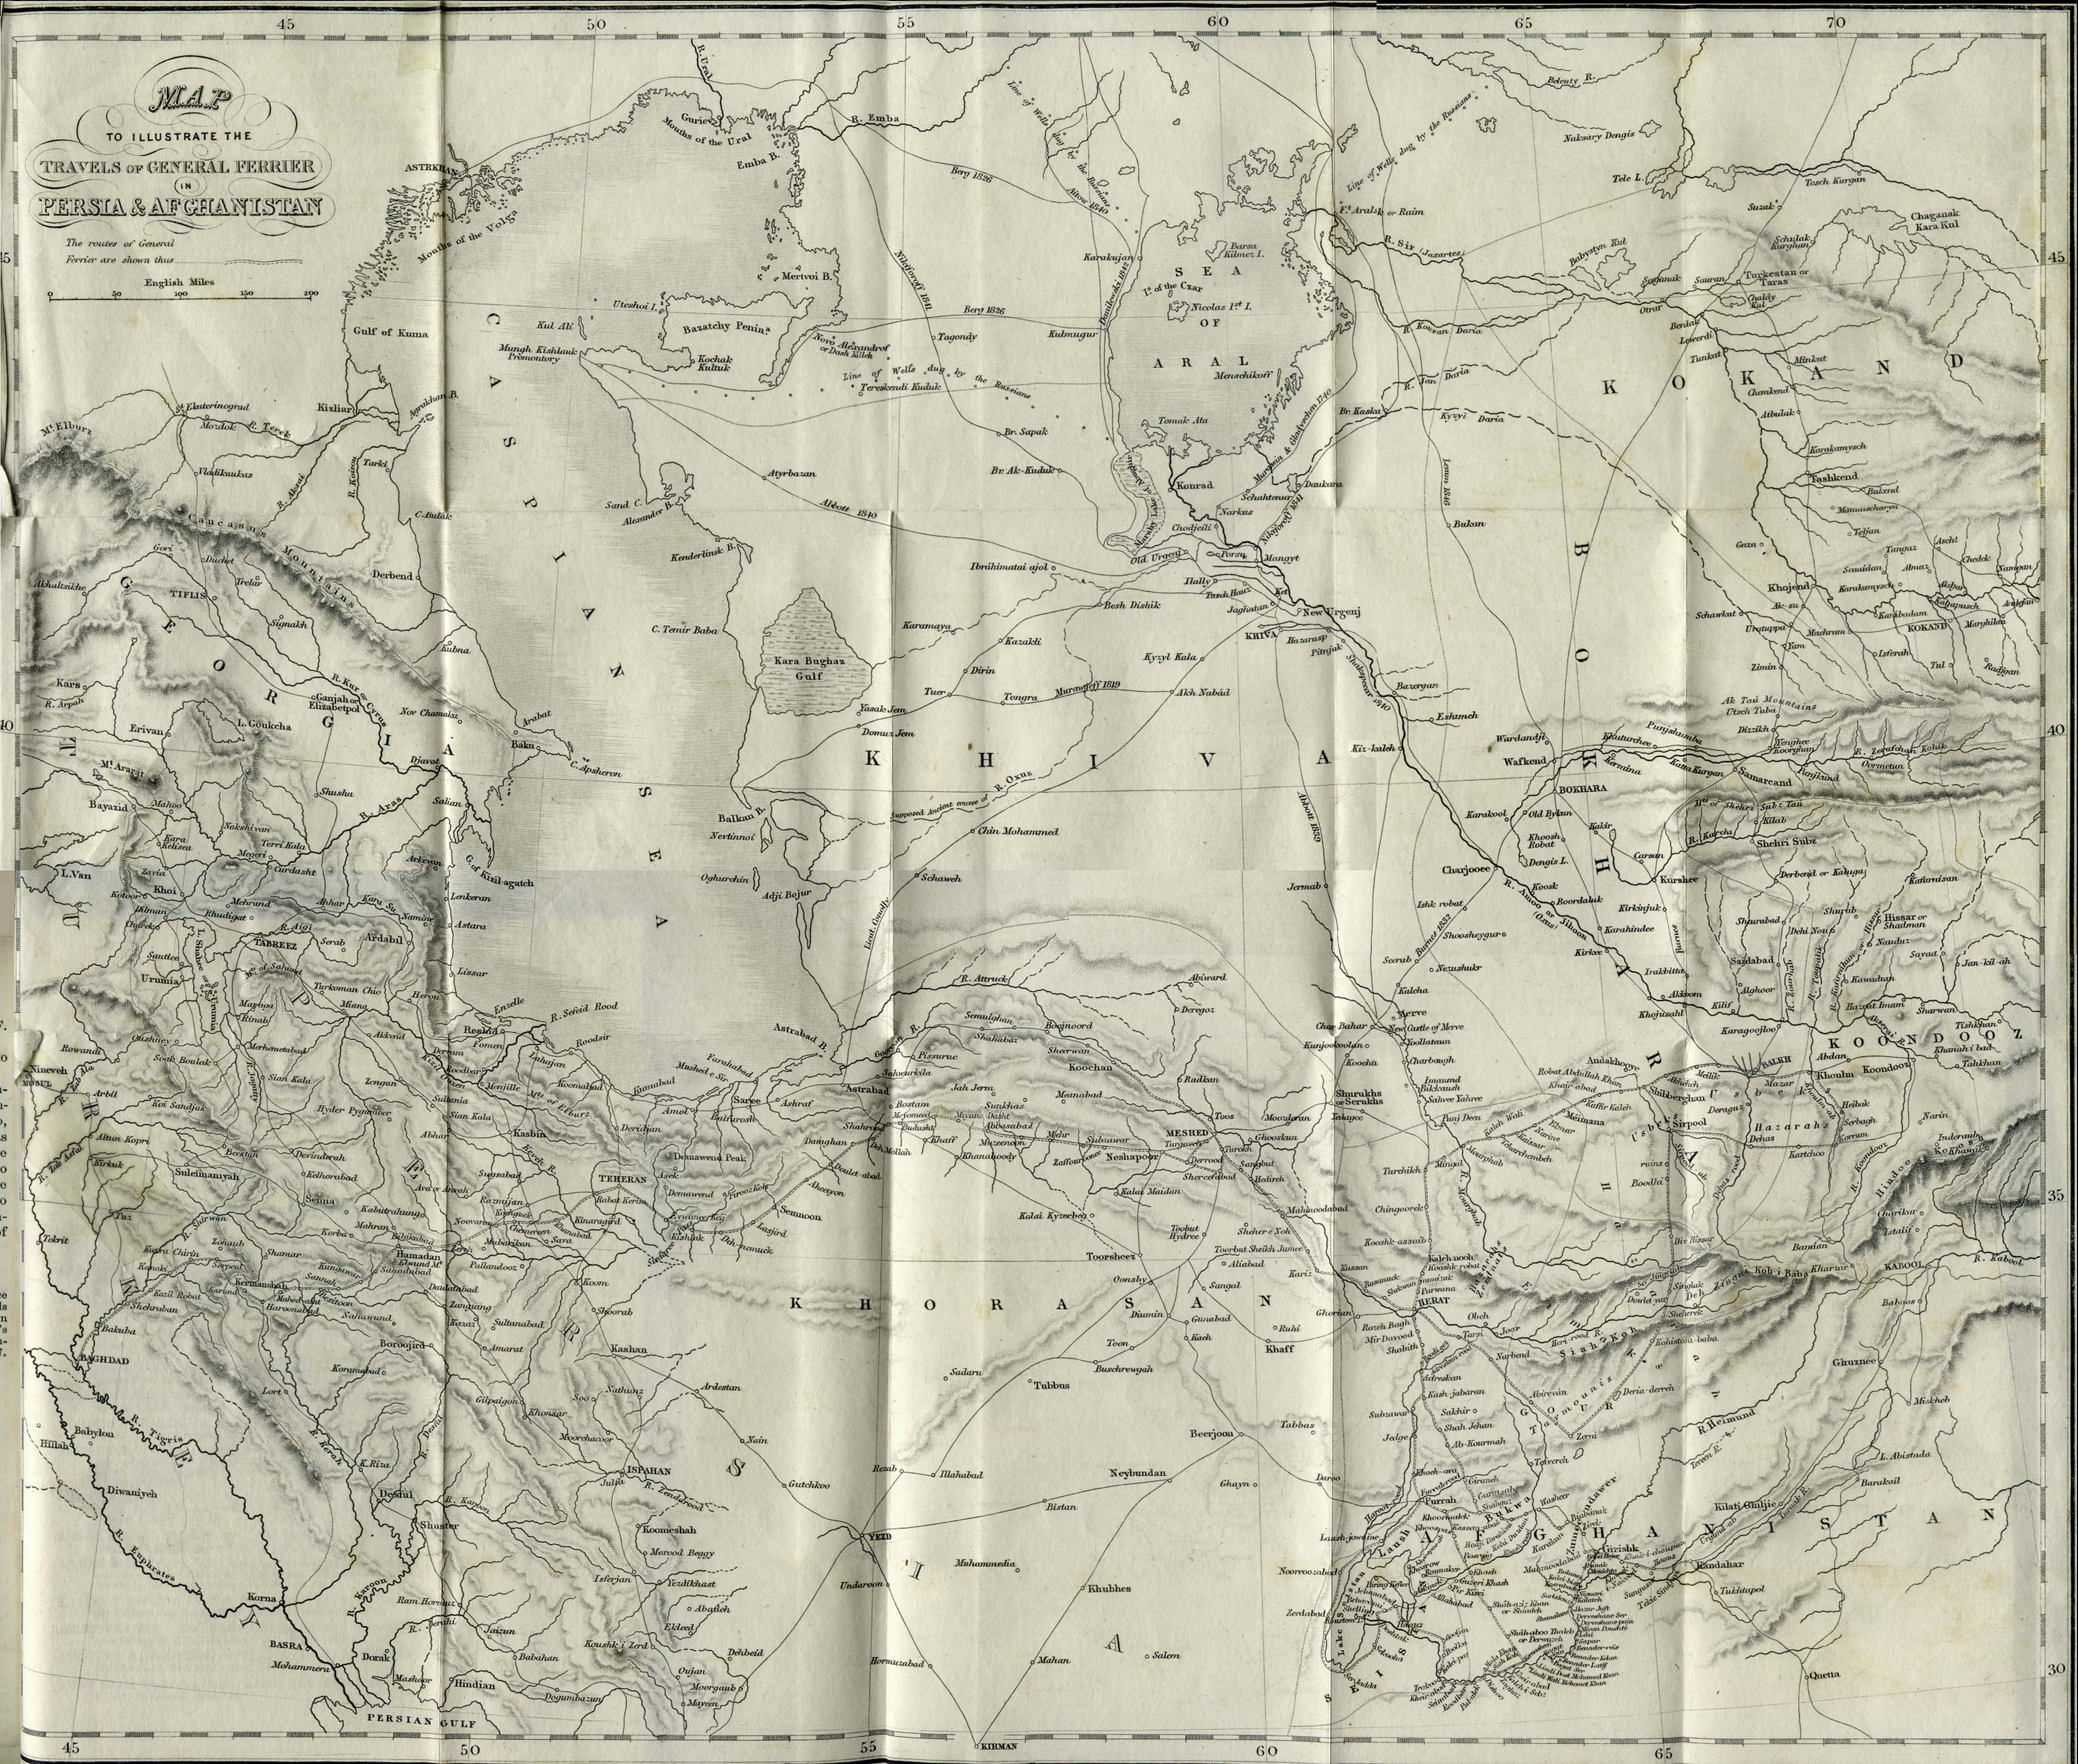 Persia and Afghanistan Map 1856